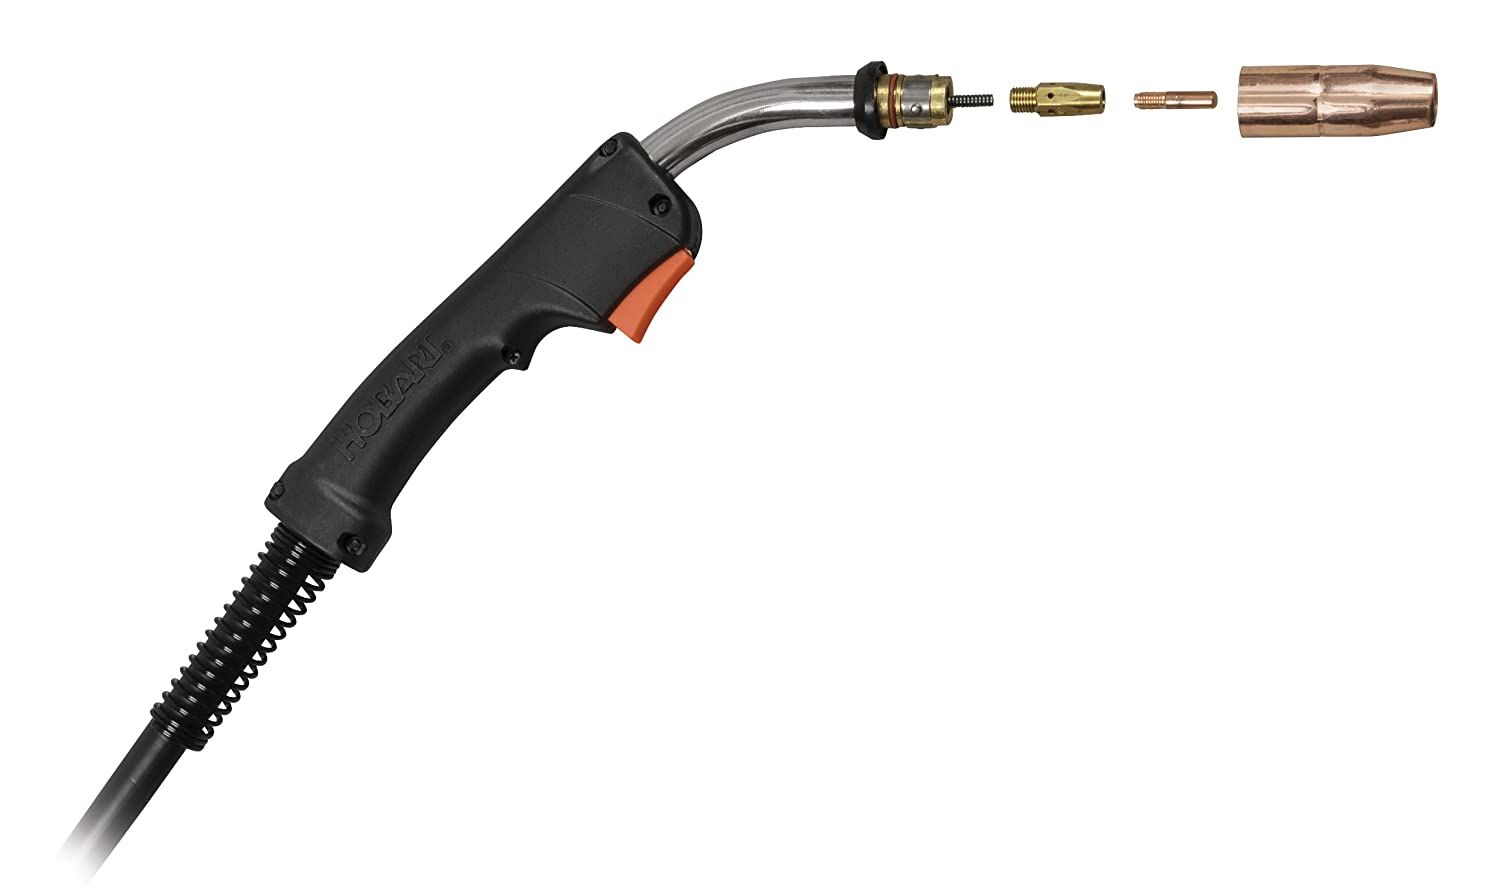 Hobart 239173 Replacement Gun for Ironman 230 Wire Welder - Multi ...